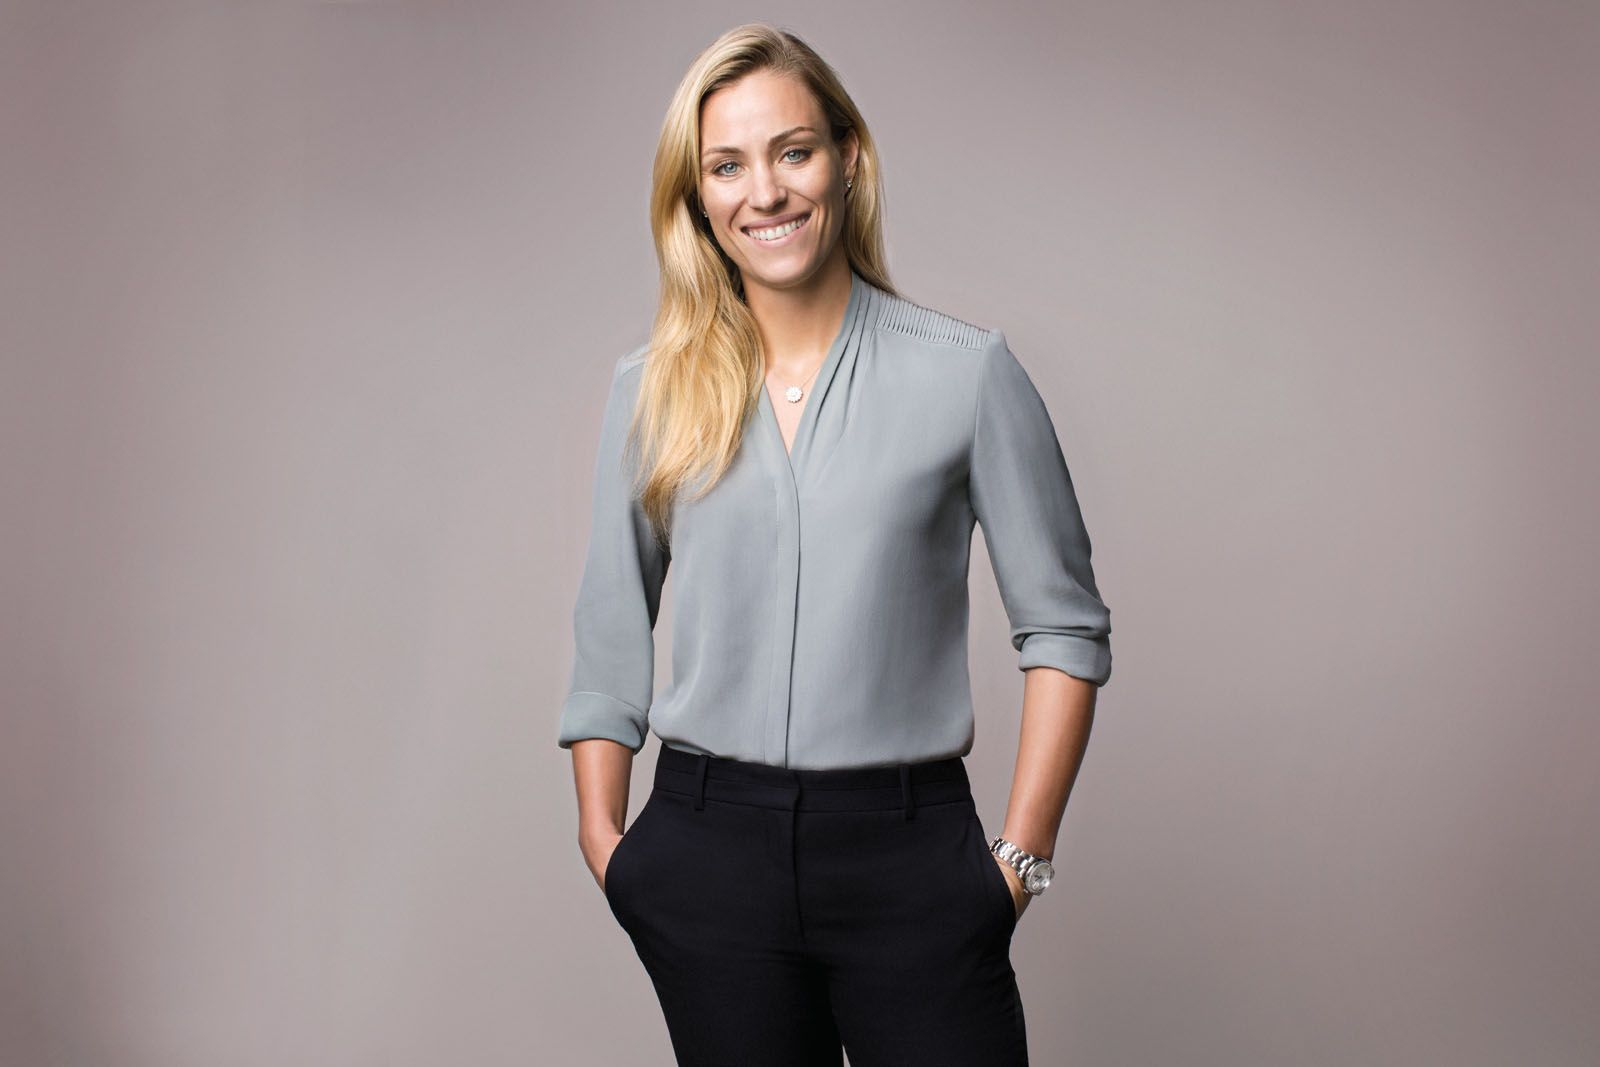 Tennis Star Angelique Kerber On Beating Serena Williams And What's Next For 2019